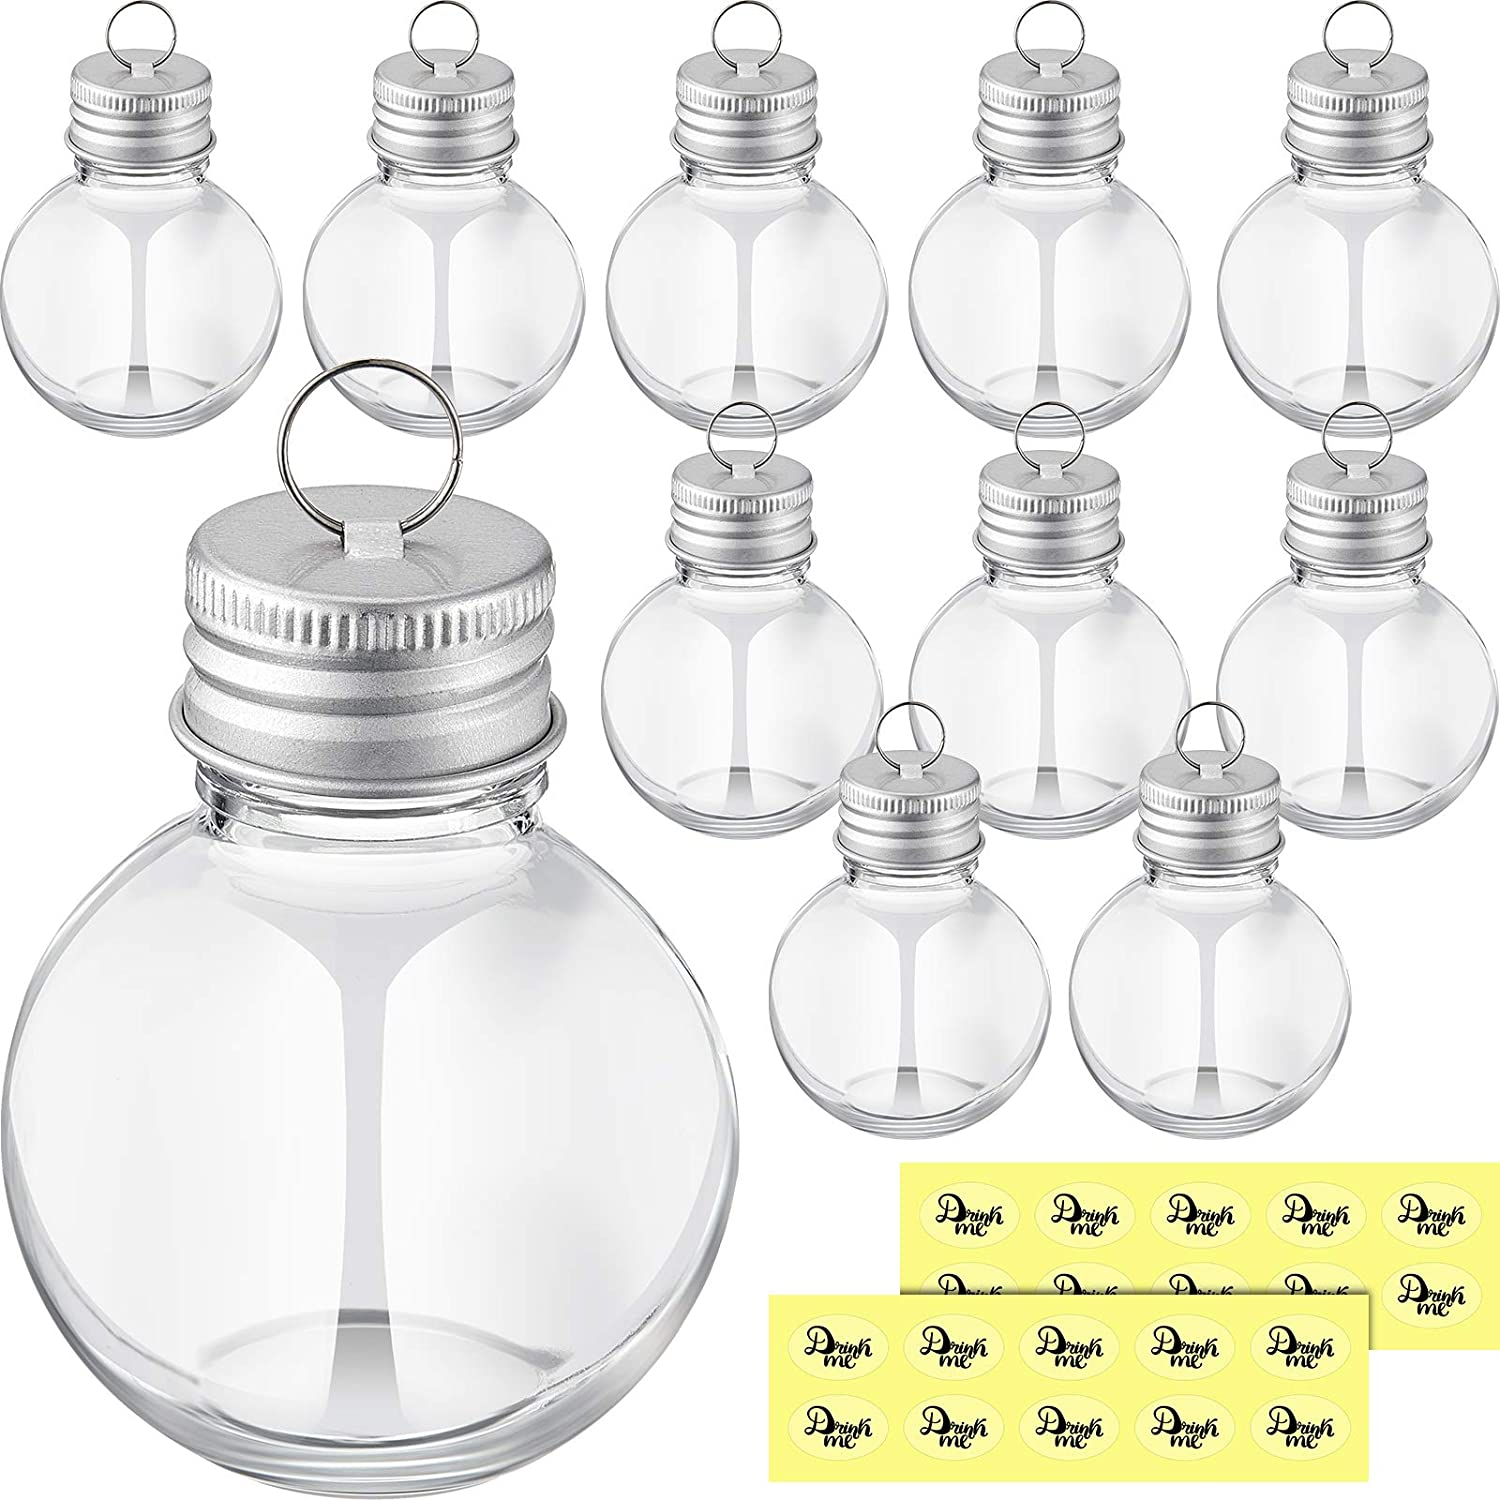 12 Pieces Christmas Booze Balls Christmas Fillable Booze Tree Ornaments Water Bottle Bulbs Shape Clear Plastic Christmas Ornaments Pendant Ball Bell for Home Decoration Party Decoration